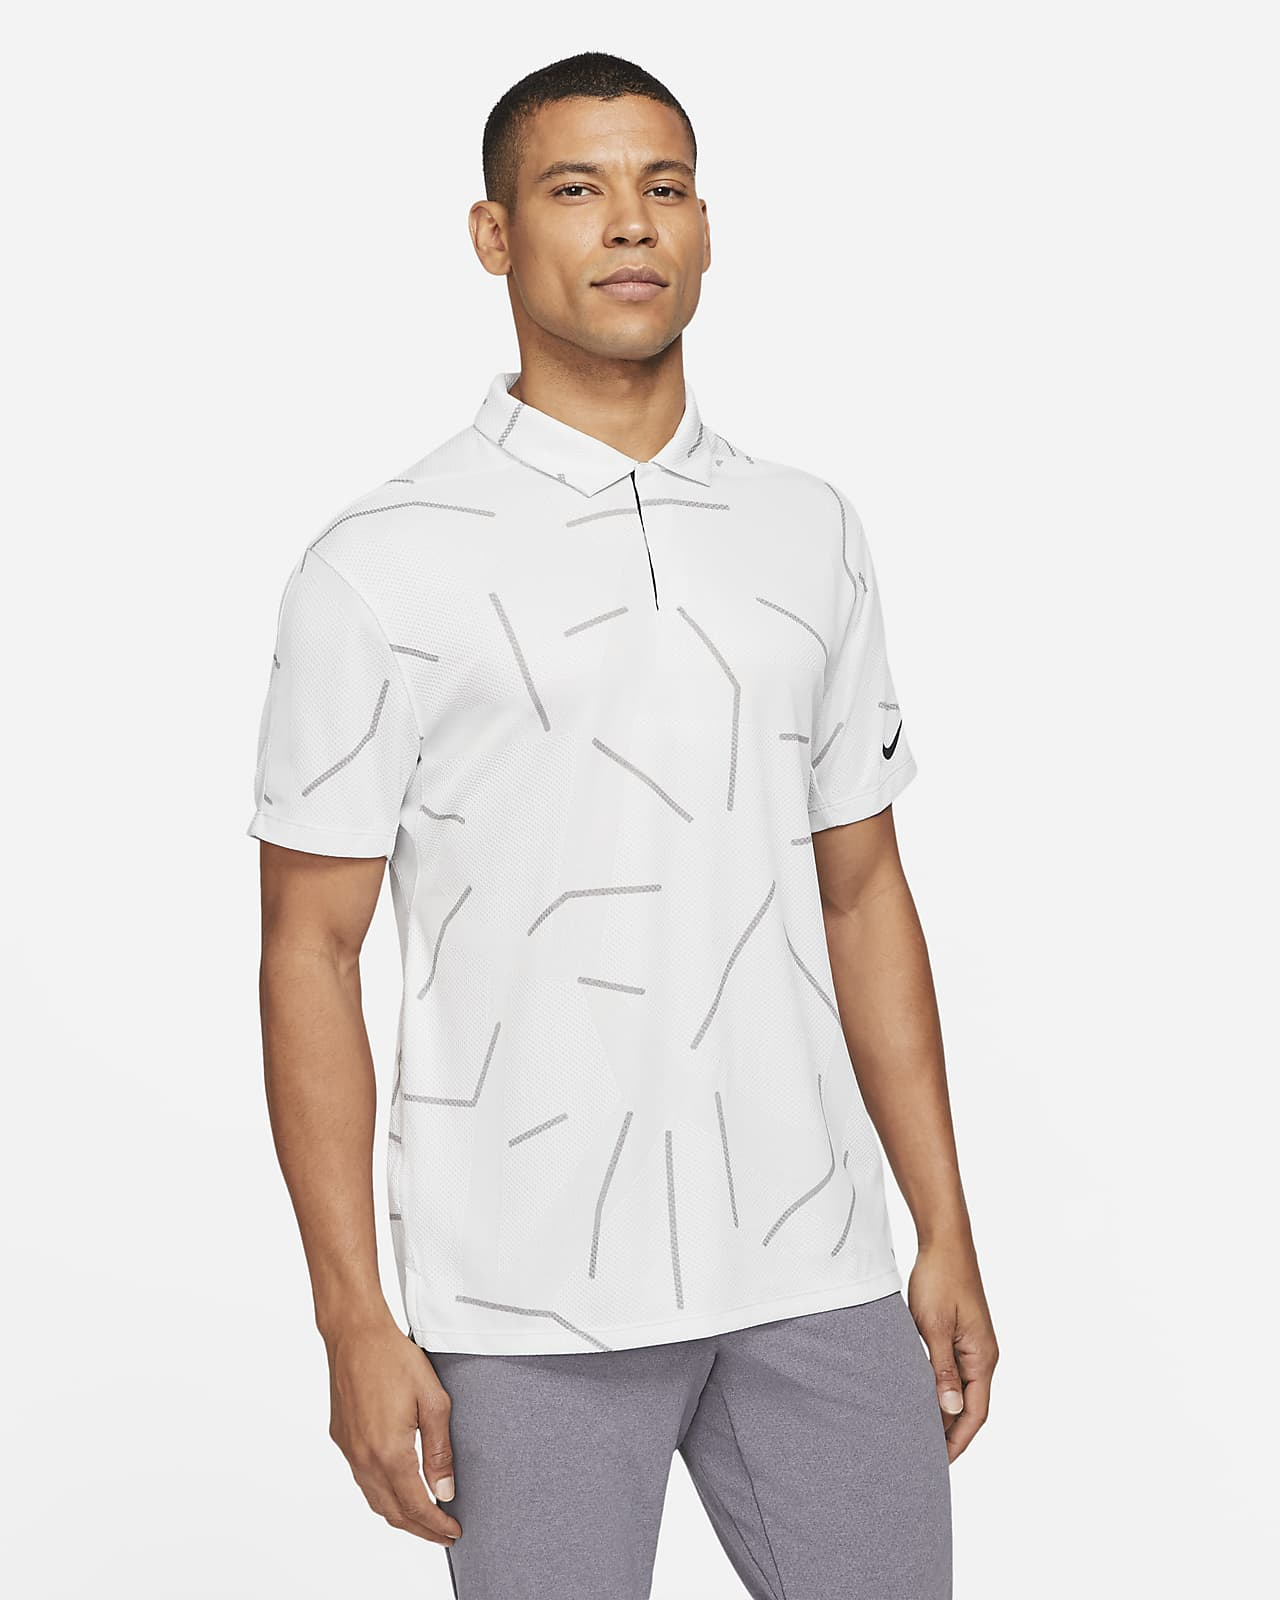 Polo de golf para hombre Nike Dri-FIT Tiger Woods